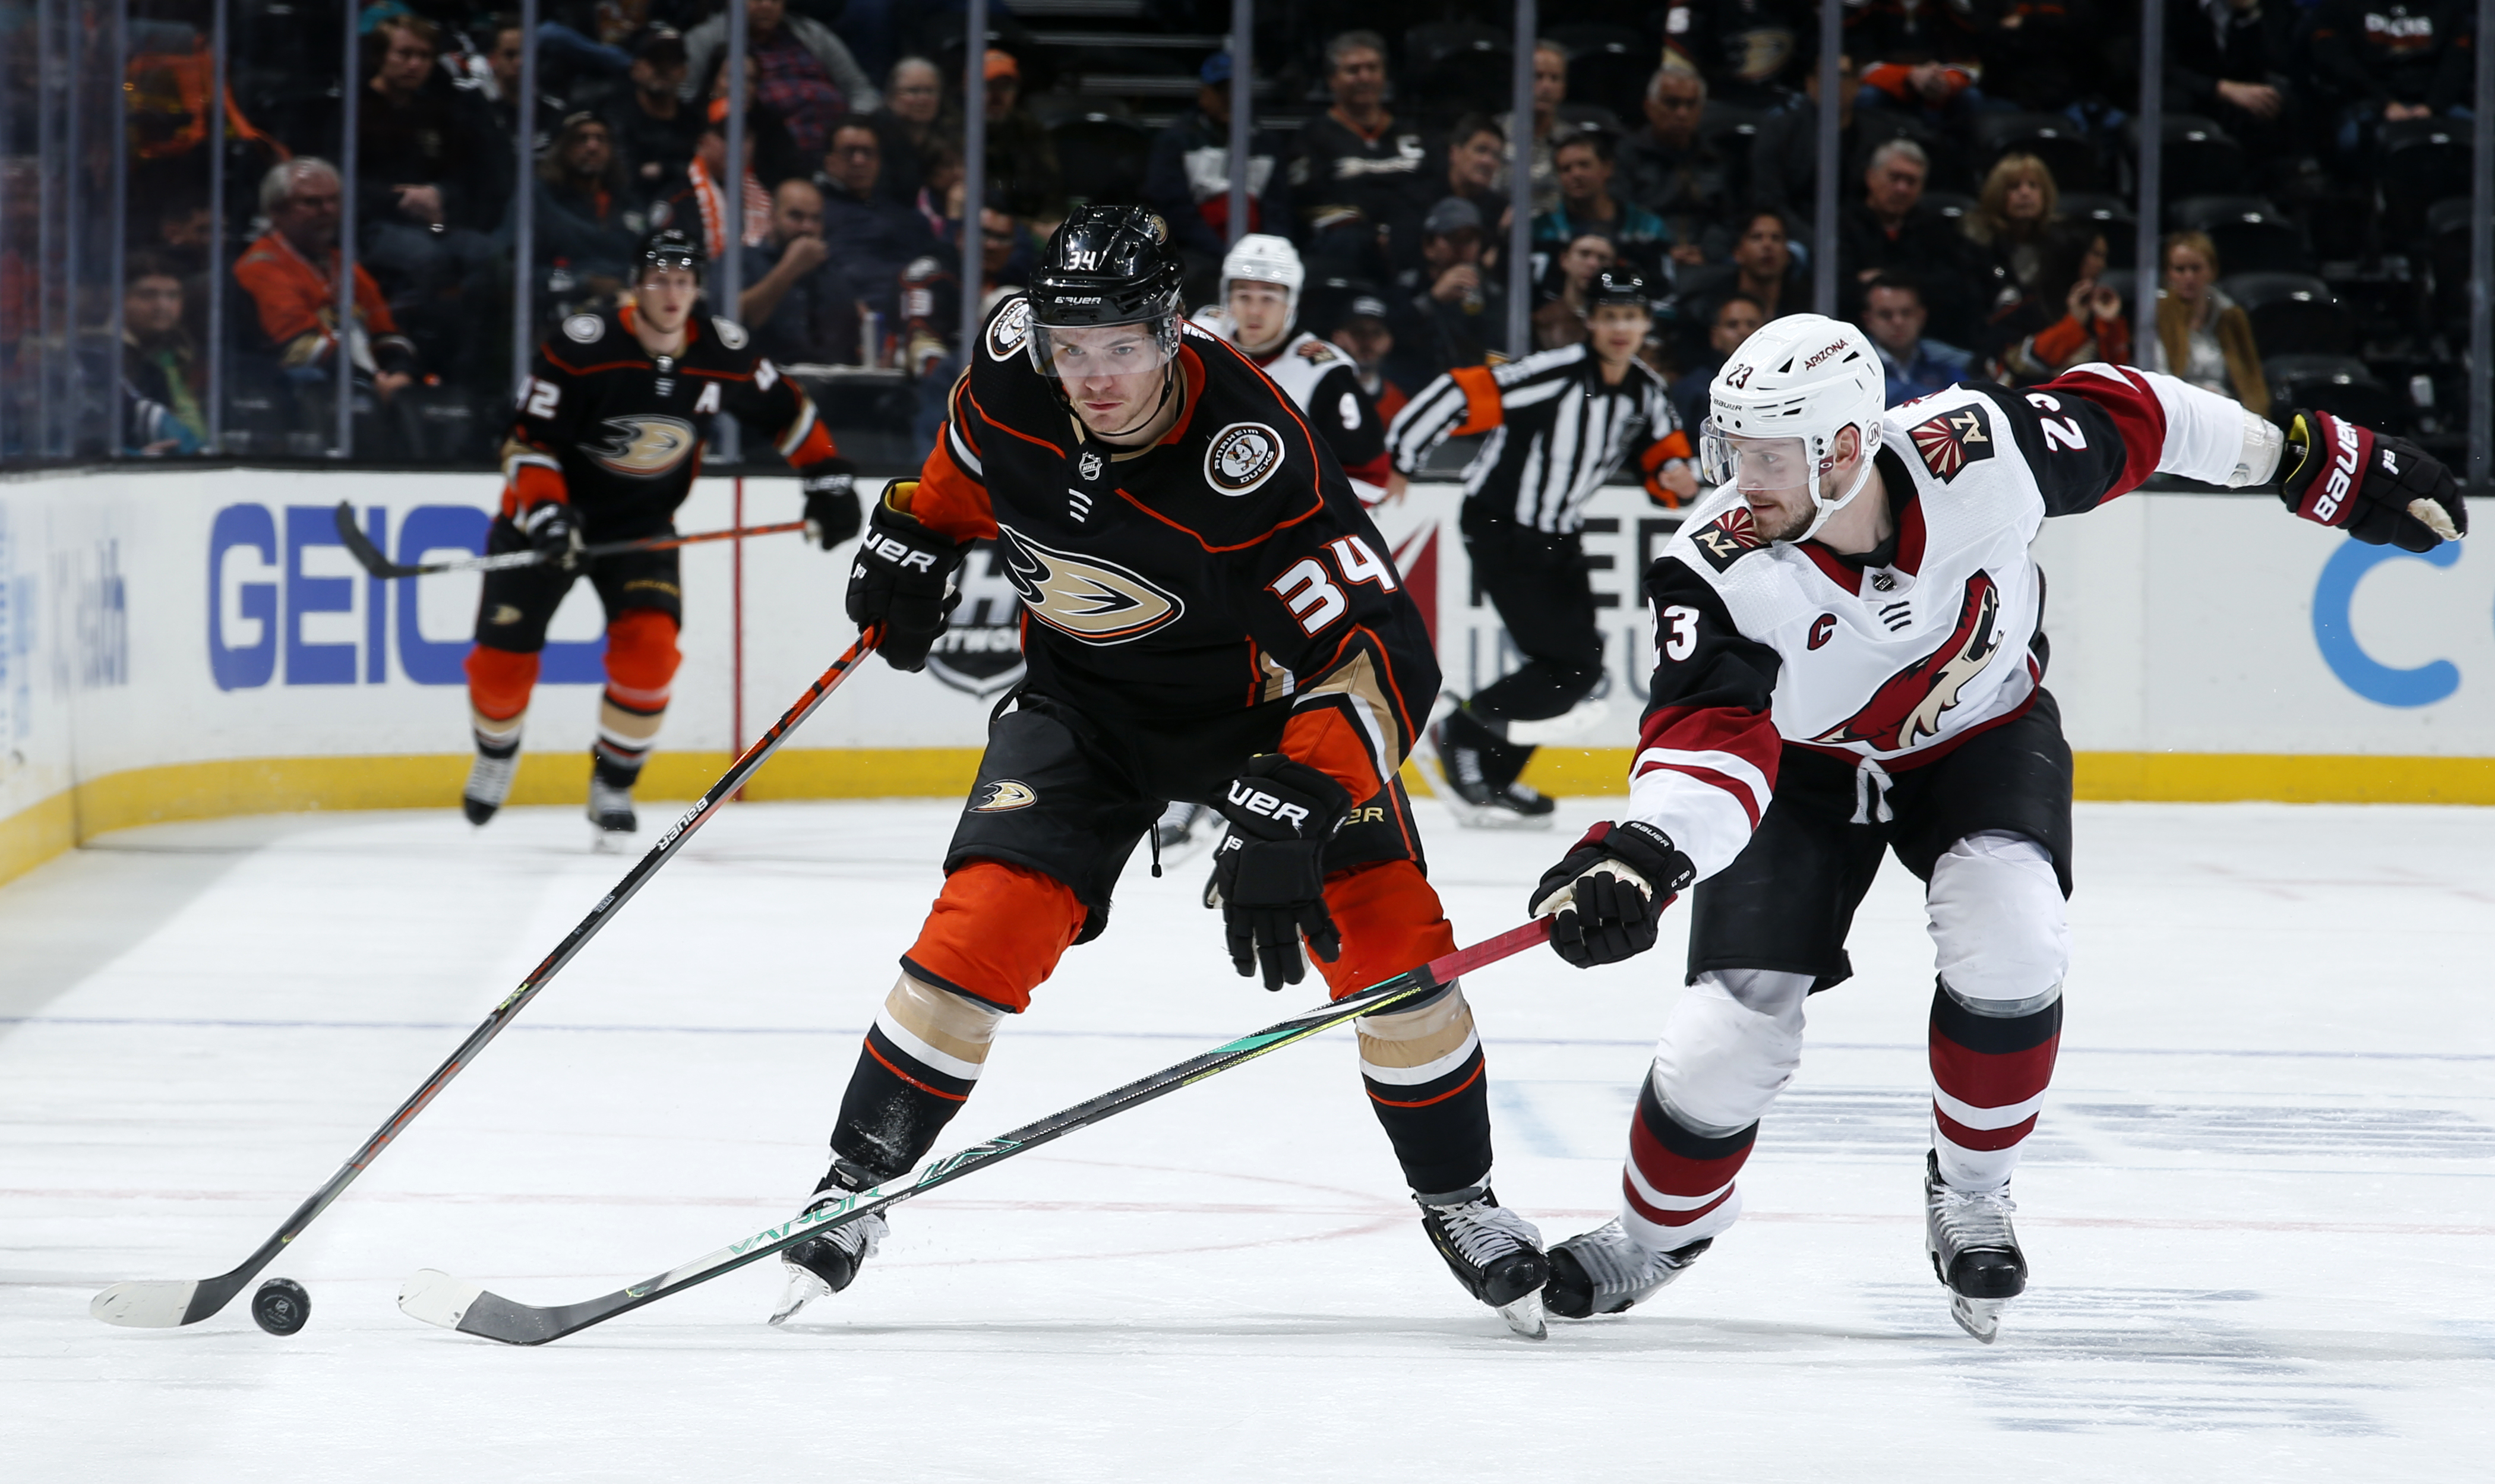 Sam Steel #34 of the Anaheim Ducks skates with the puck with pressure from Oliver Ekman-Larsson #23 of the Arizona Coyotes during the game at Honda Center on January 29, 2020 in Anaheim, California.